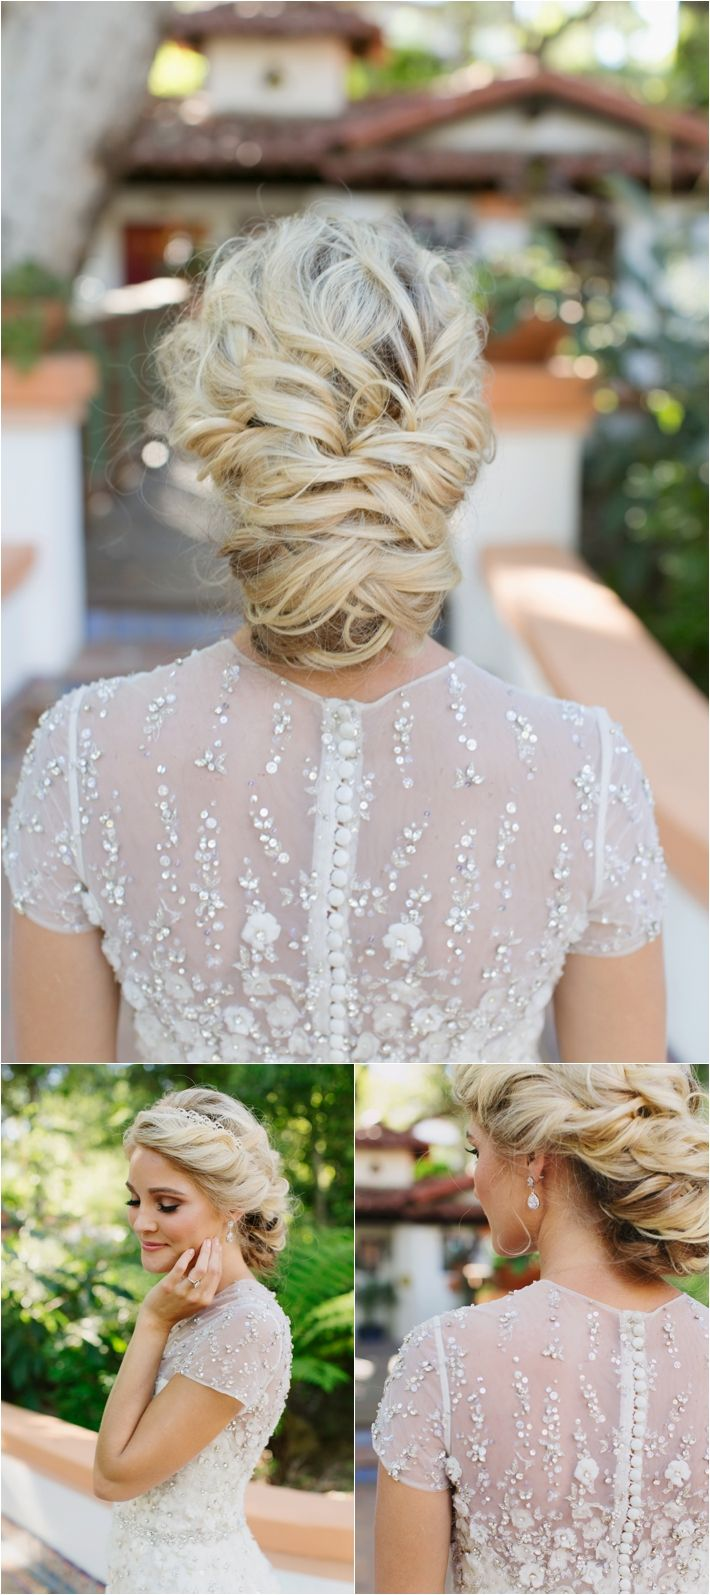 Best & Top 9 Braided Hairstyles for Wedding Bridals 2016-2017 (8)